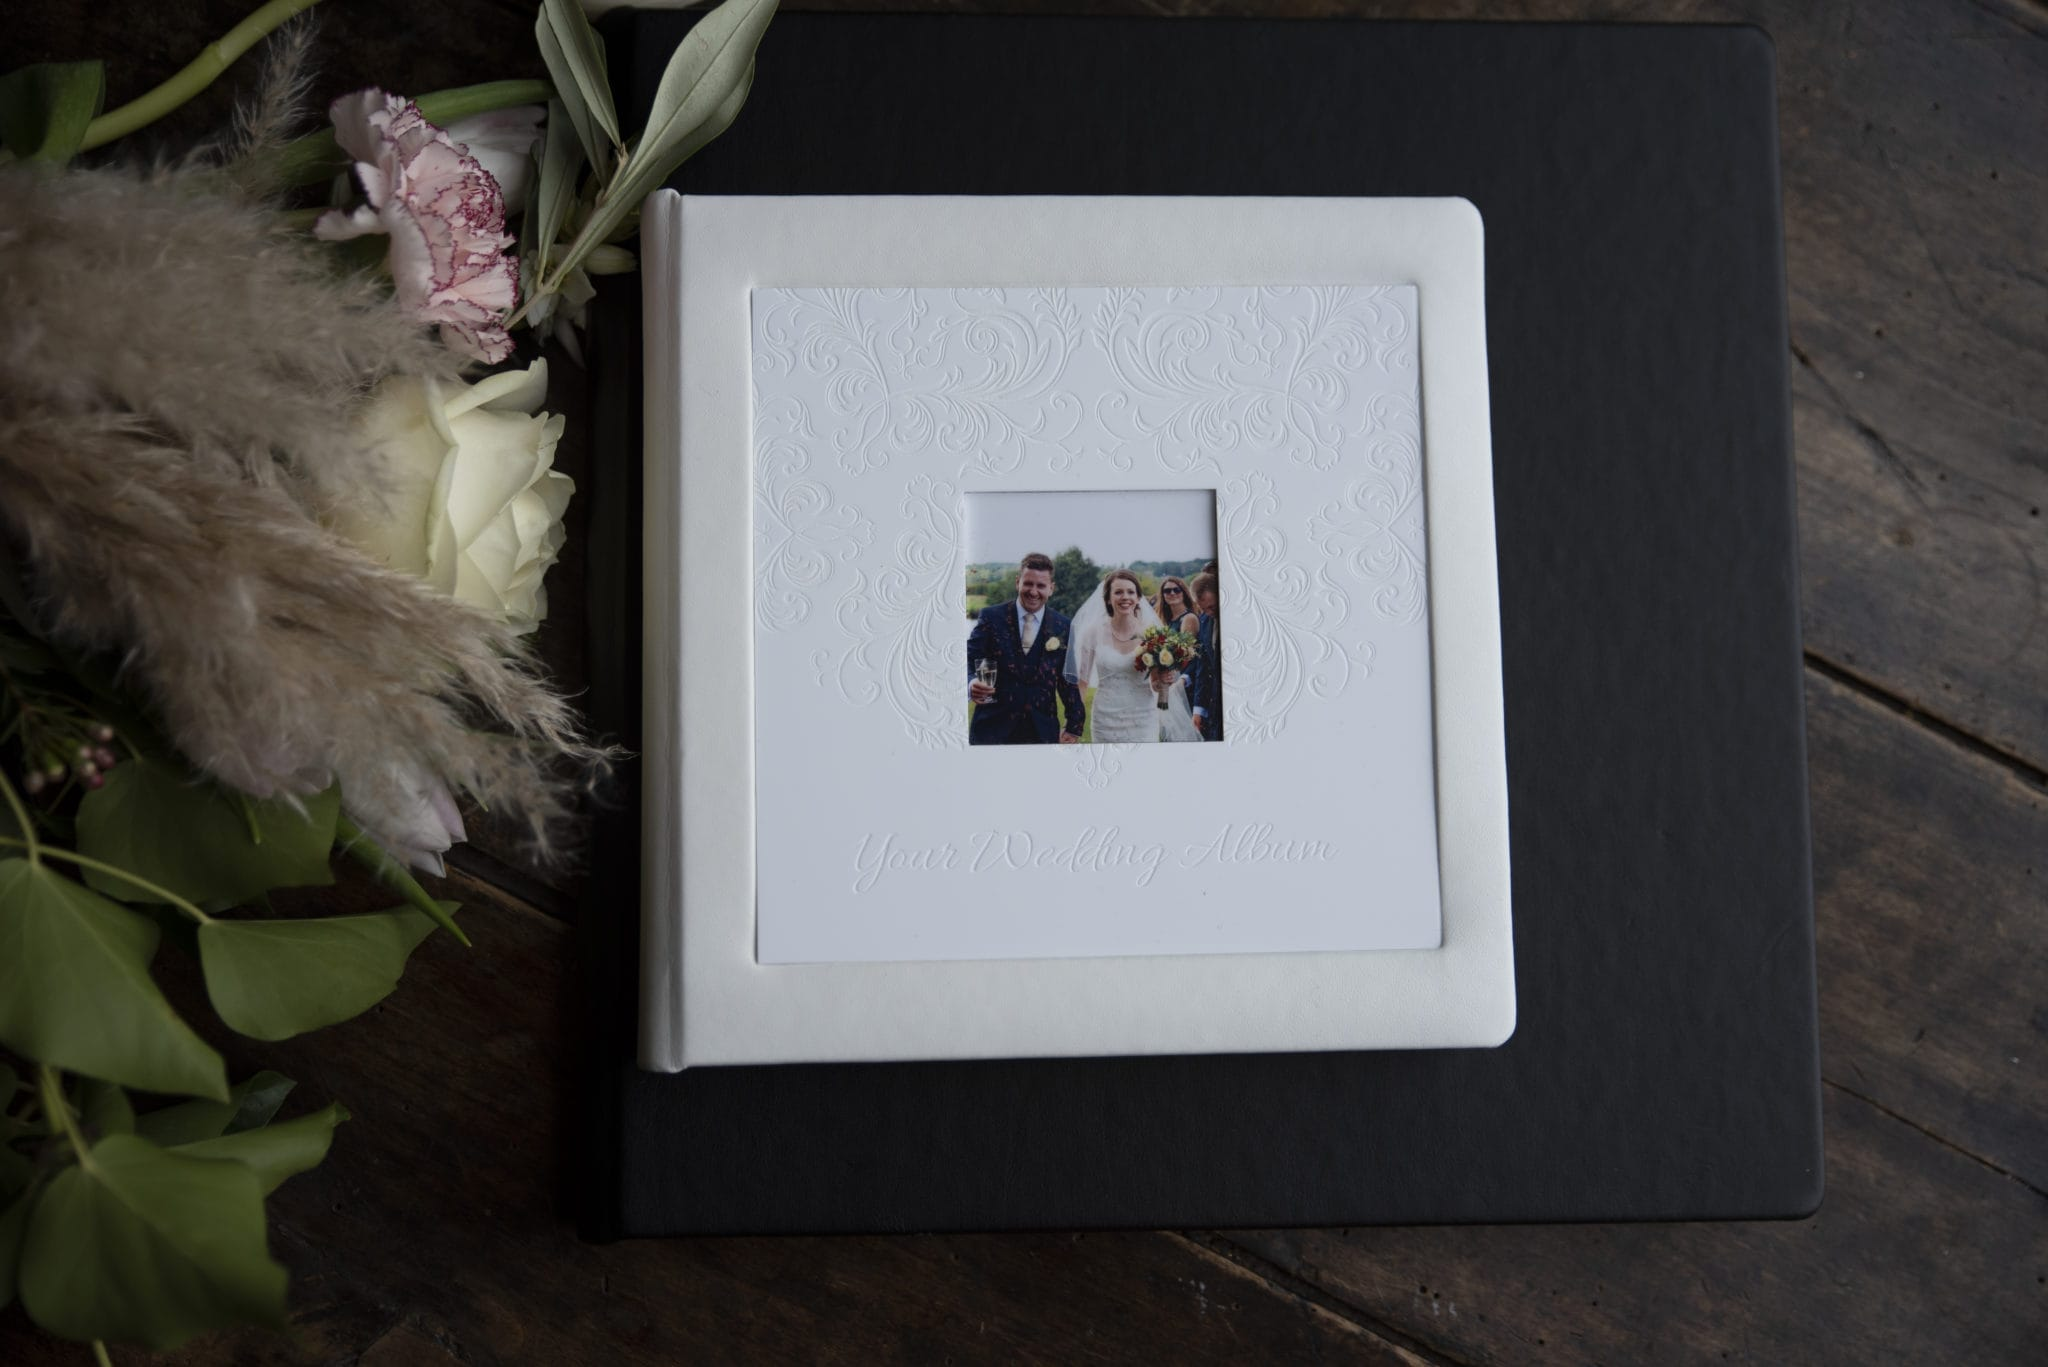 Wedding photography white album with a photo window